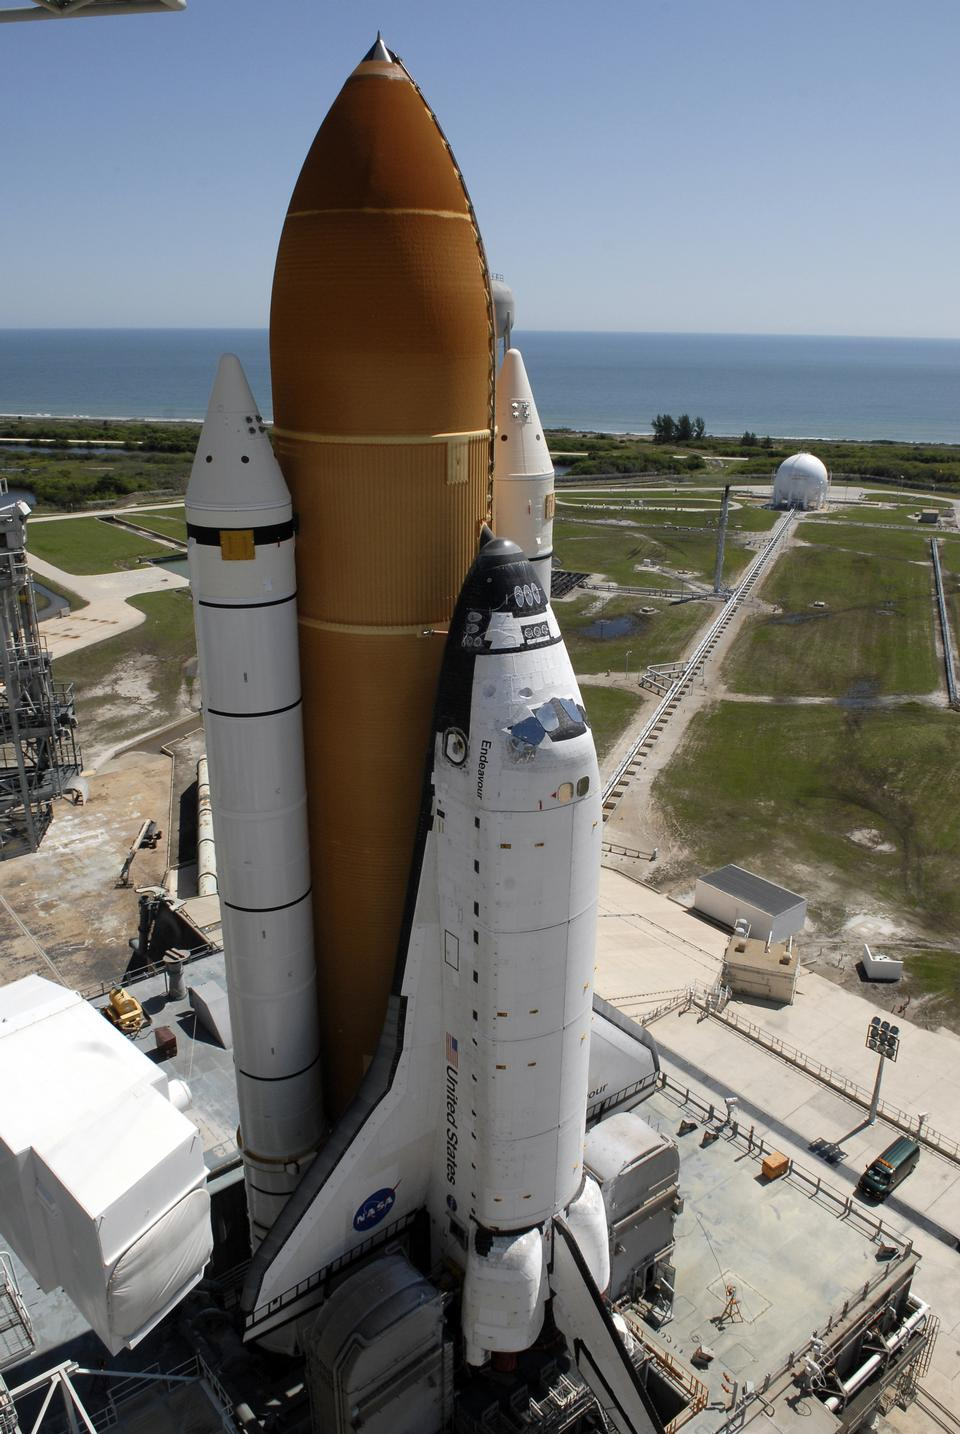 Free Space Shuttle Endeavour on launch pad